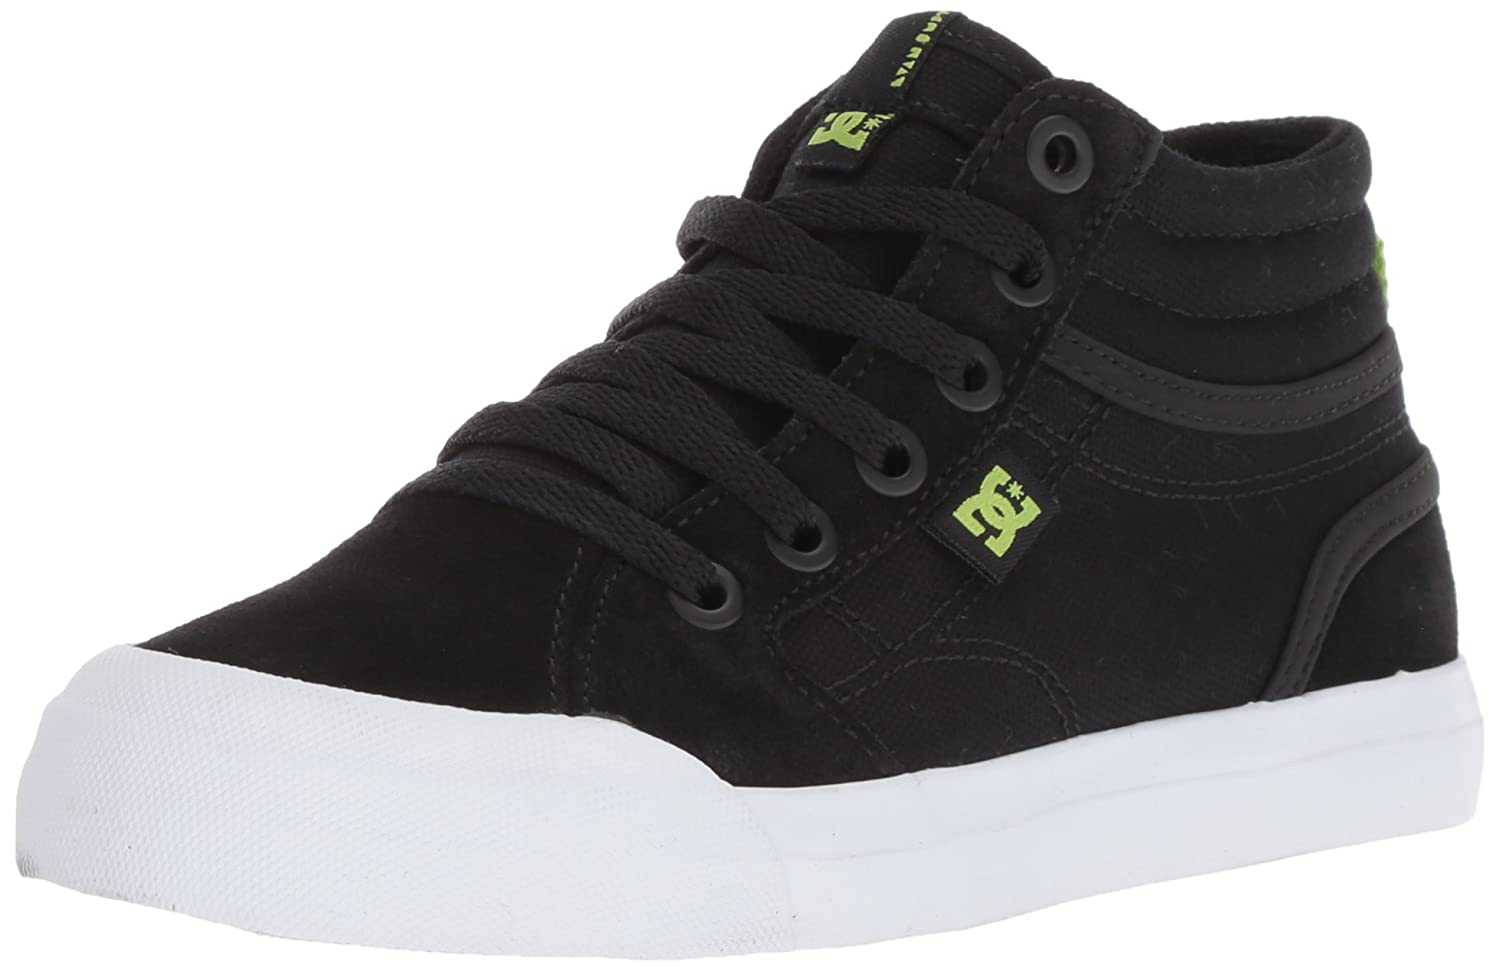 DC Kids' Evan Hi Zip Skate Shoe ADBS300330